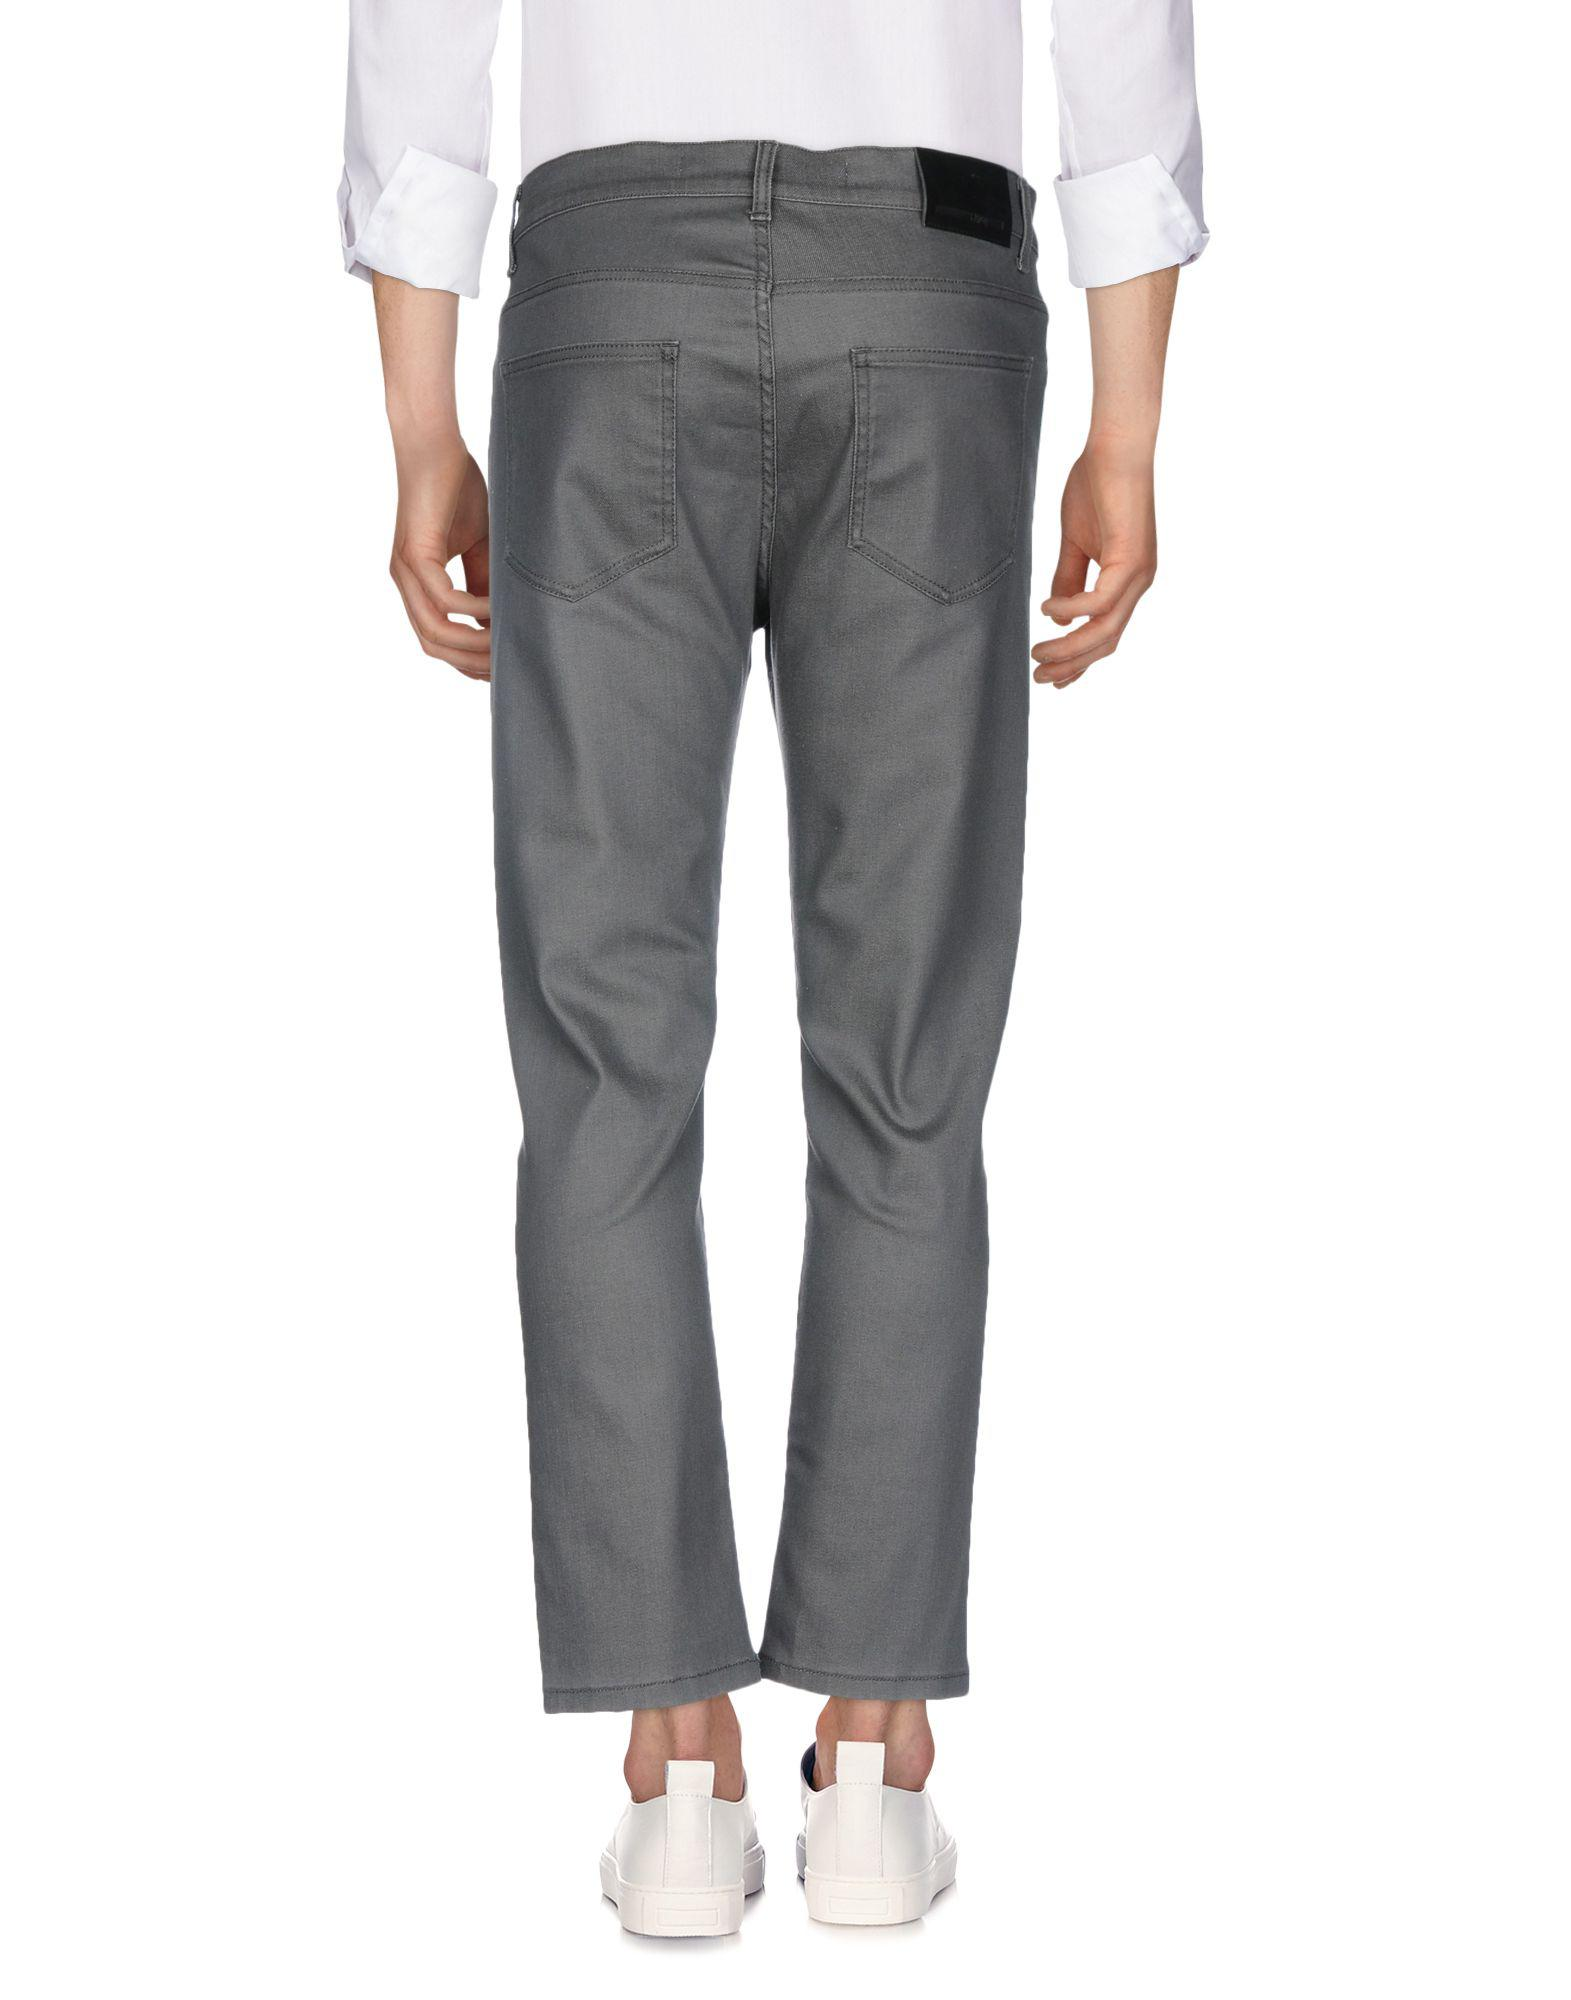 McQ Denim Pants in Grey (Grey) for Men